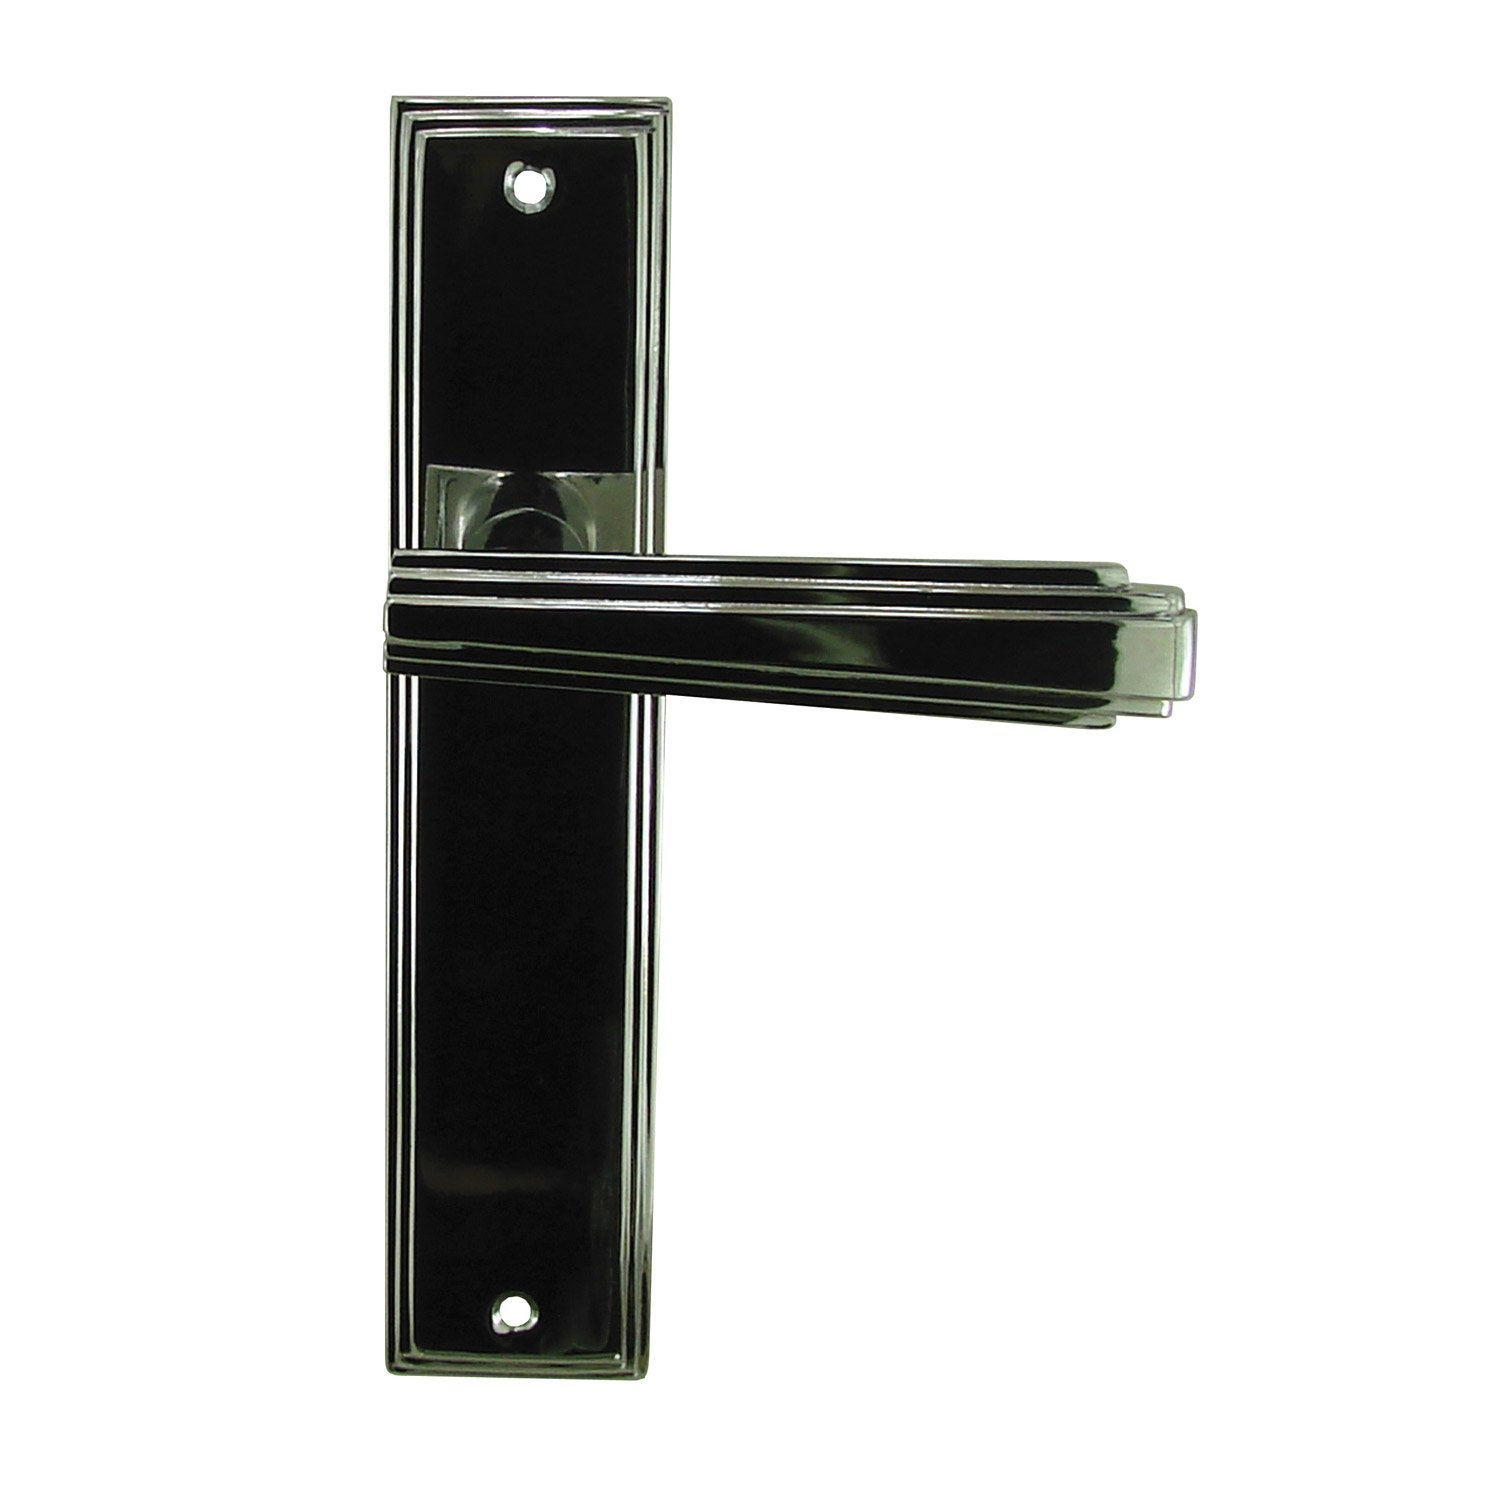 2 poign es de porte art d co sans trou aluminium 195 mm for Deco porte leroy merlin